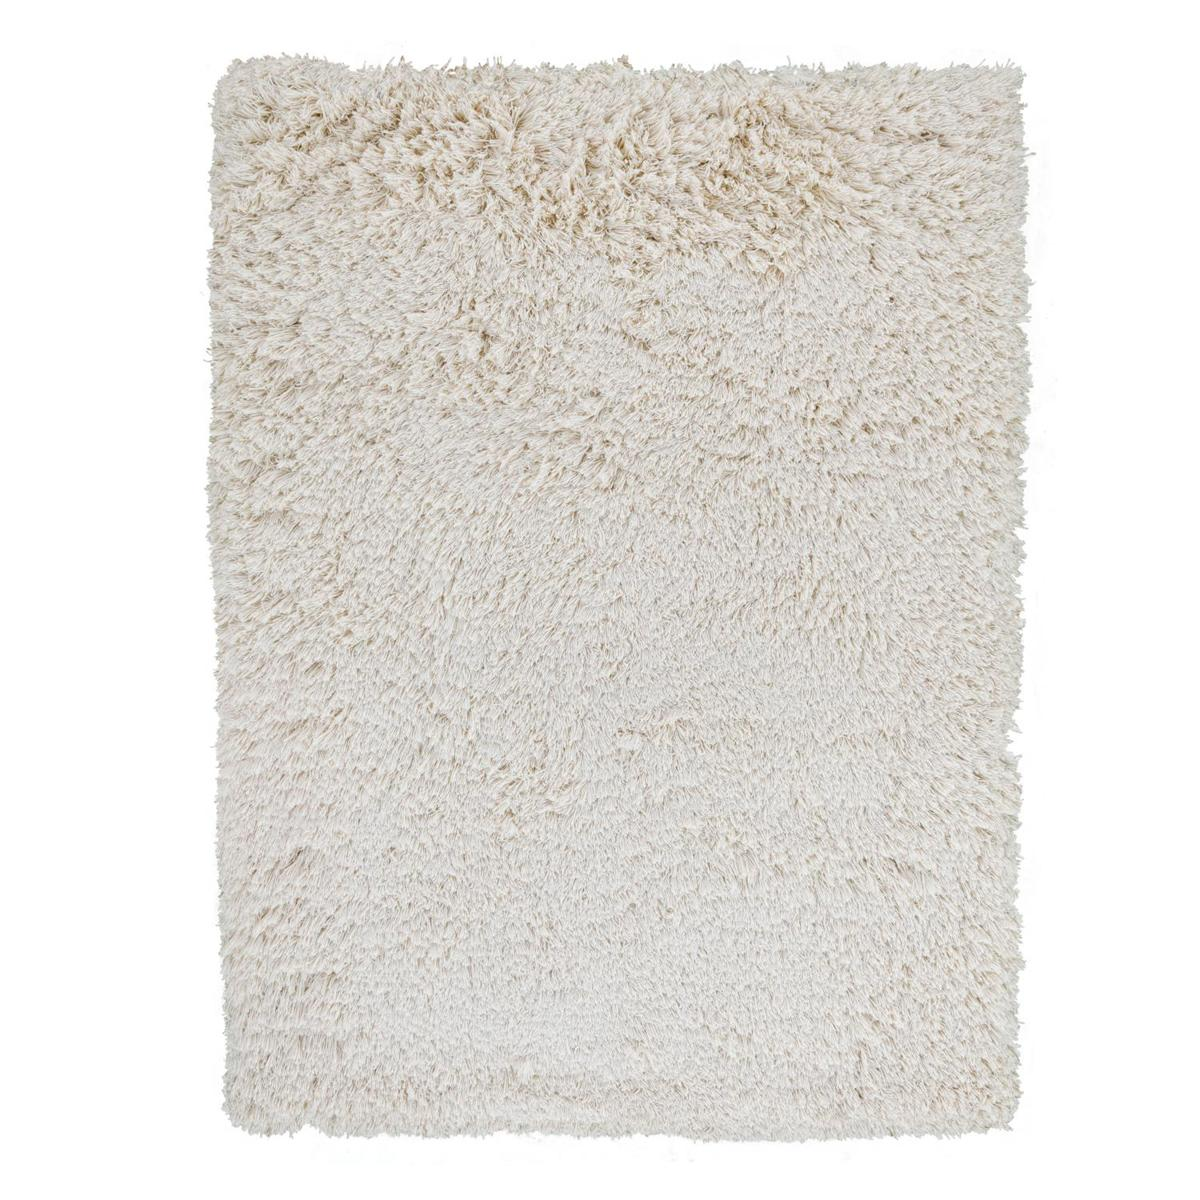 Highlander Shaggy Rug Natural 250x350cm 1